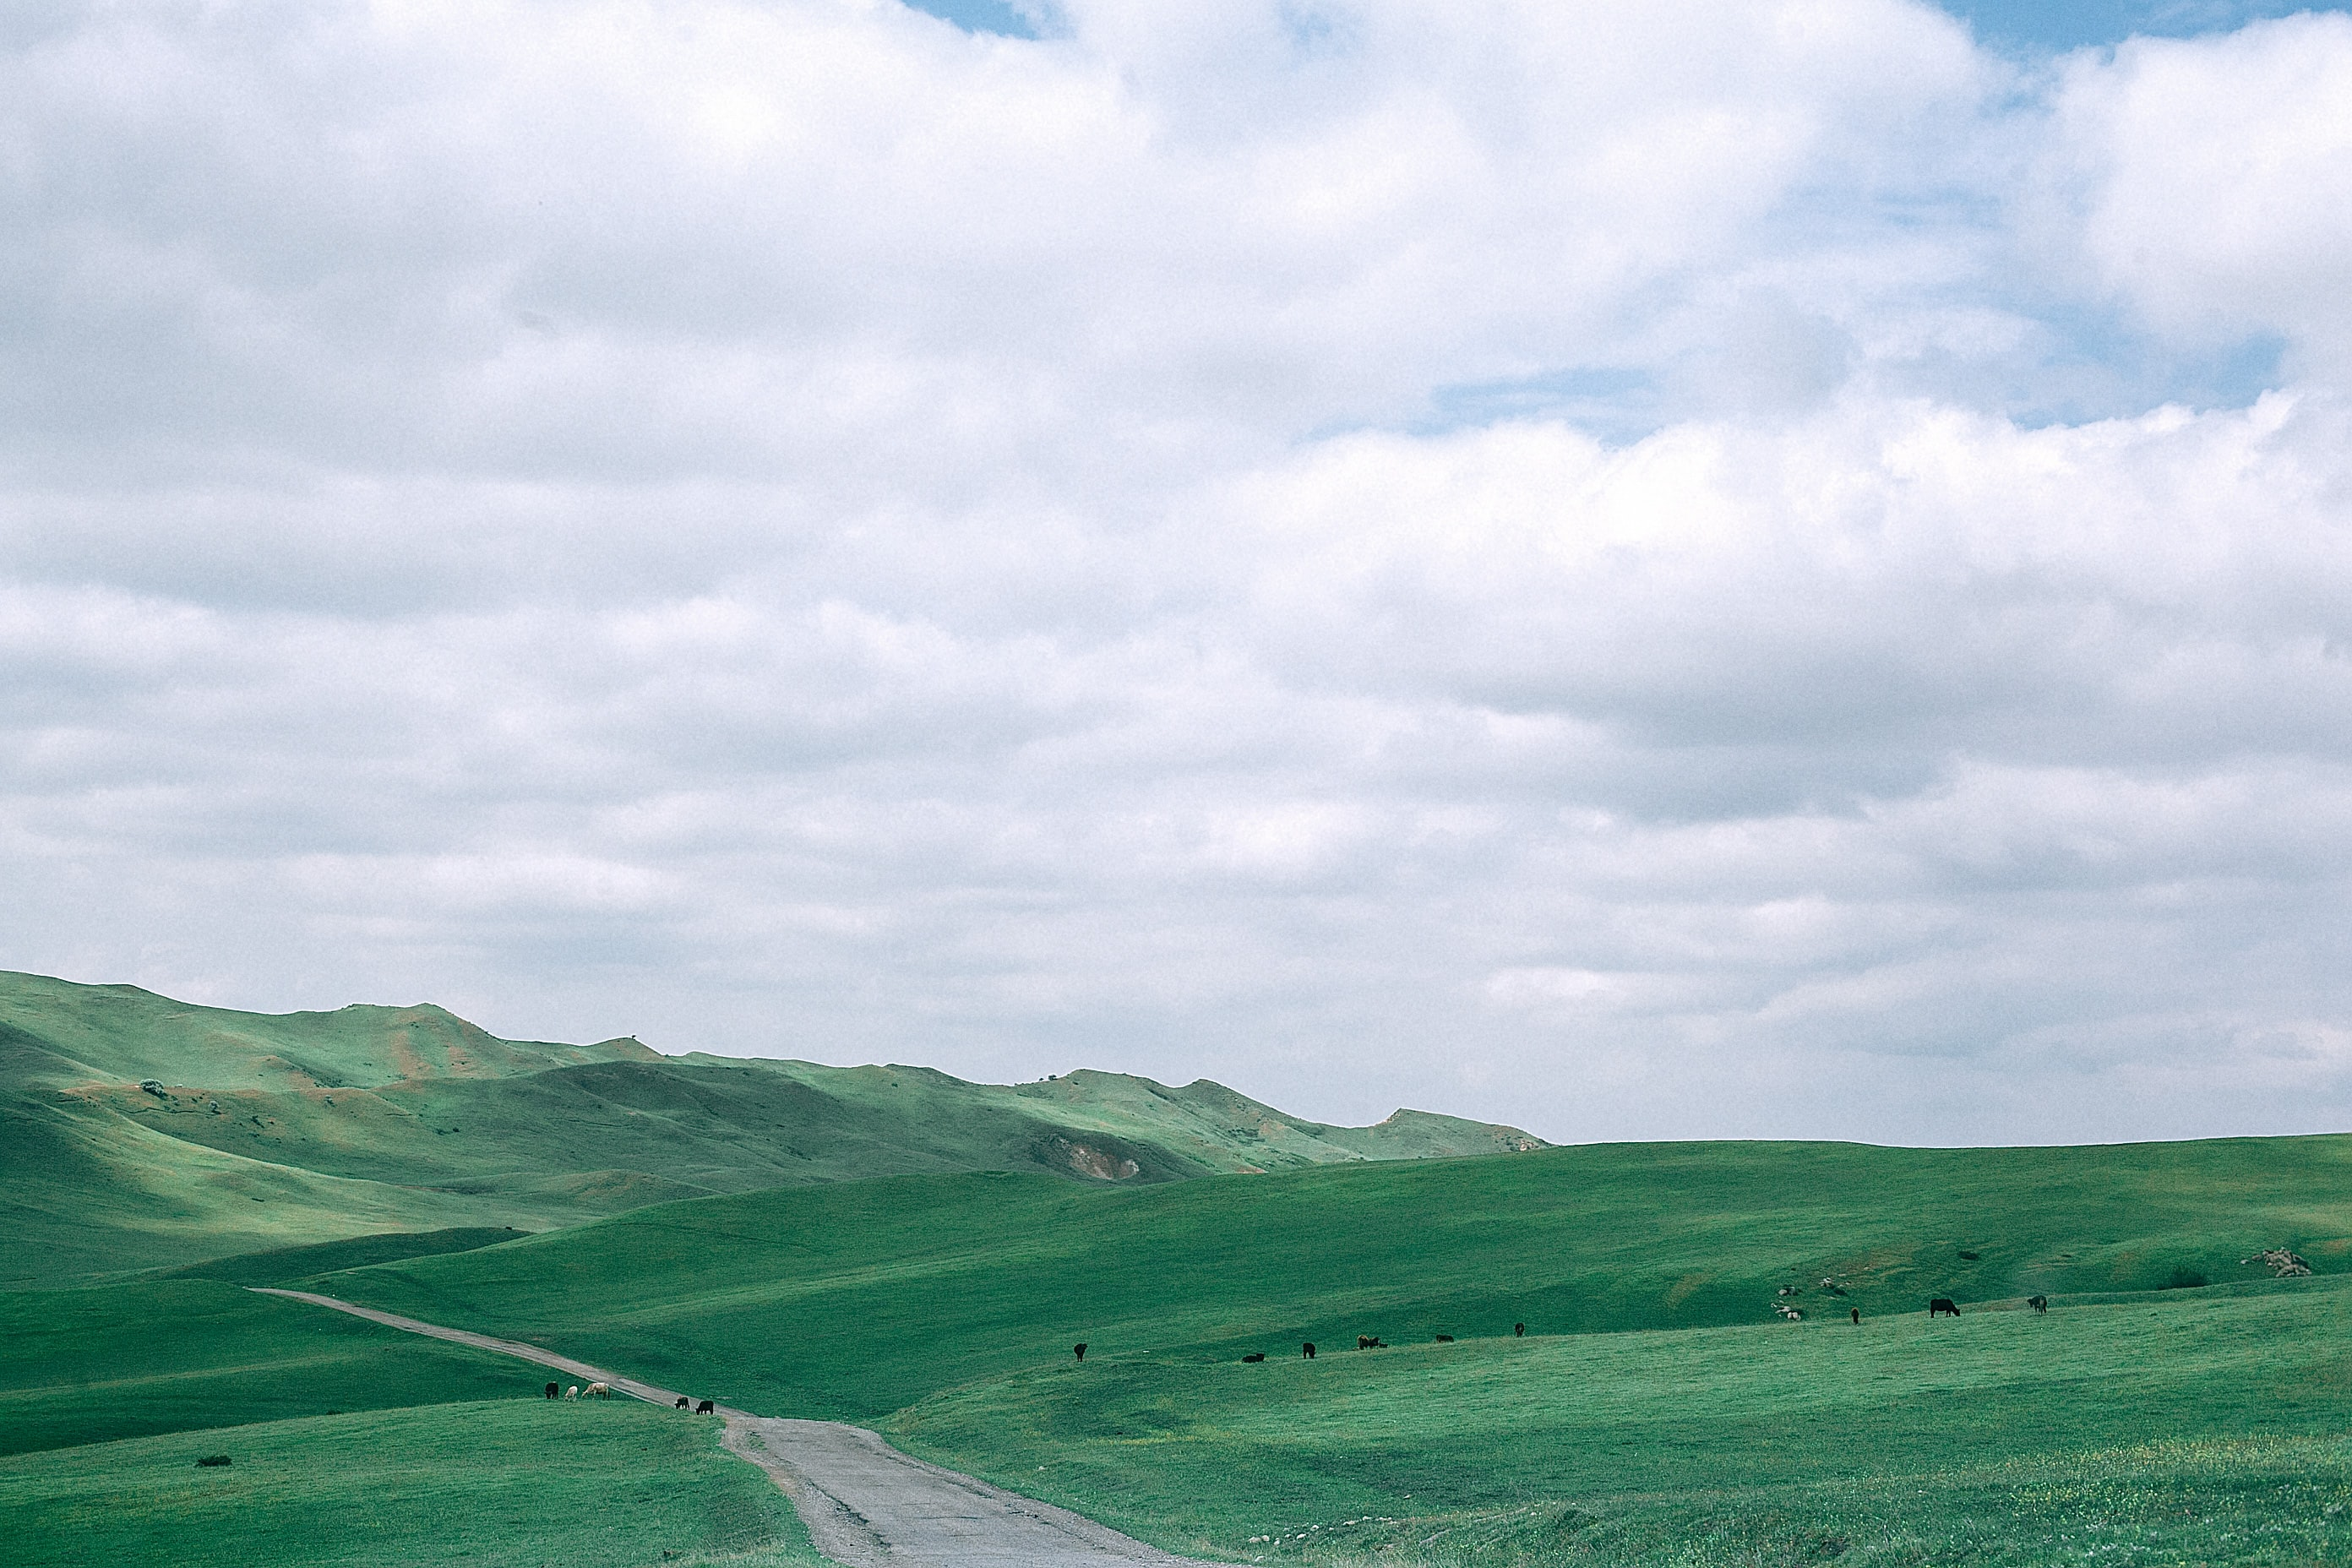 photo of green hill under cloudy white sky